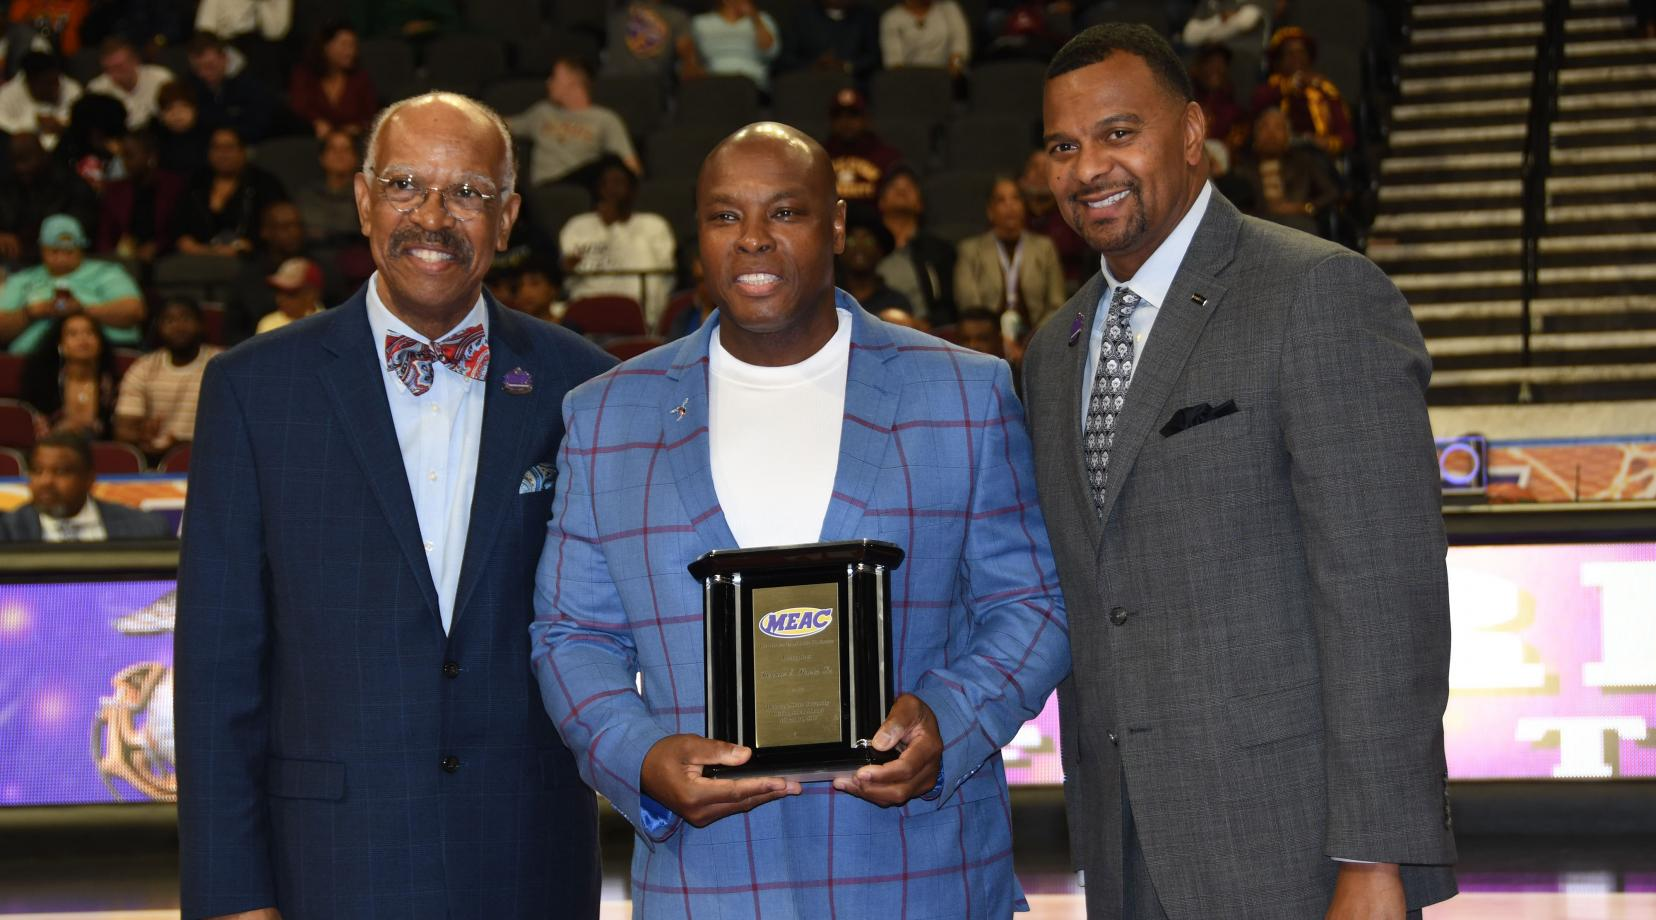 <p>Delaware State University&#039;s 2019 Distinguished Alumnus of the Year Ronnie Shaw Sr. (center), receives the award from Dr. Irving H. Smith (l), president of the MEAC Delegate Assembly, and James Church of Priority Automotive, tournament sponsor.</p>